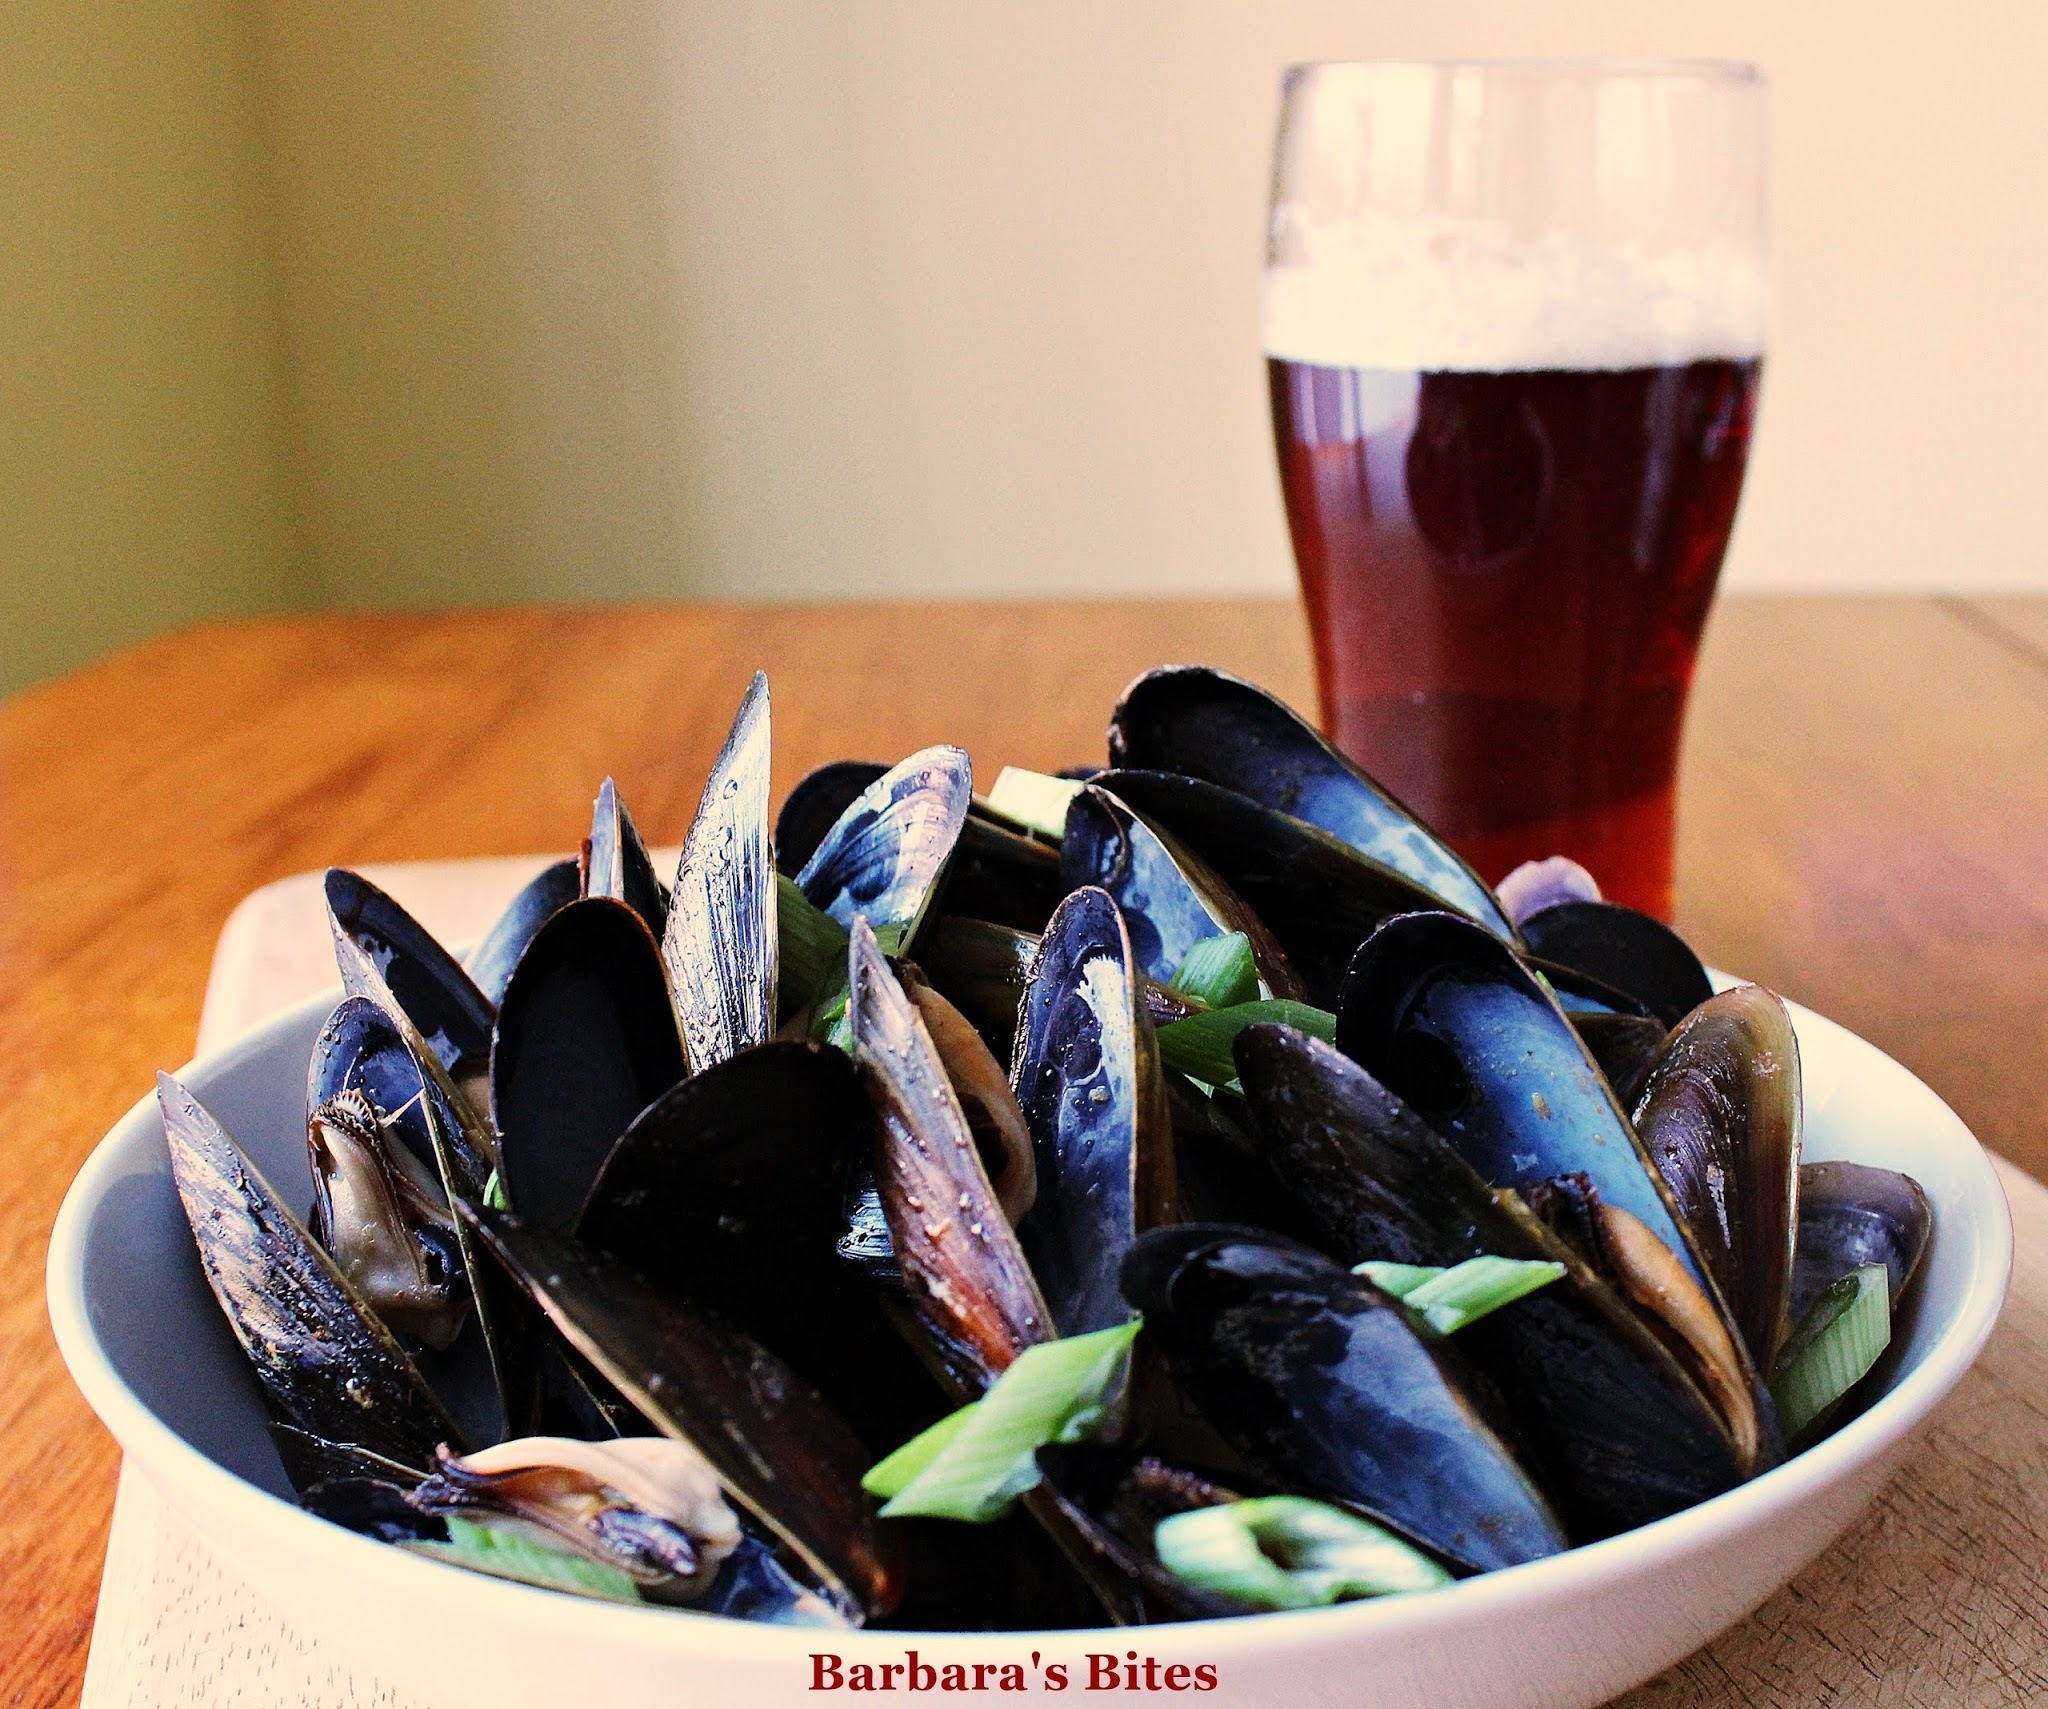 Beer-Steamed Mussels with an Asian Twist